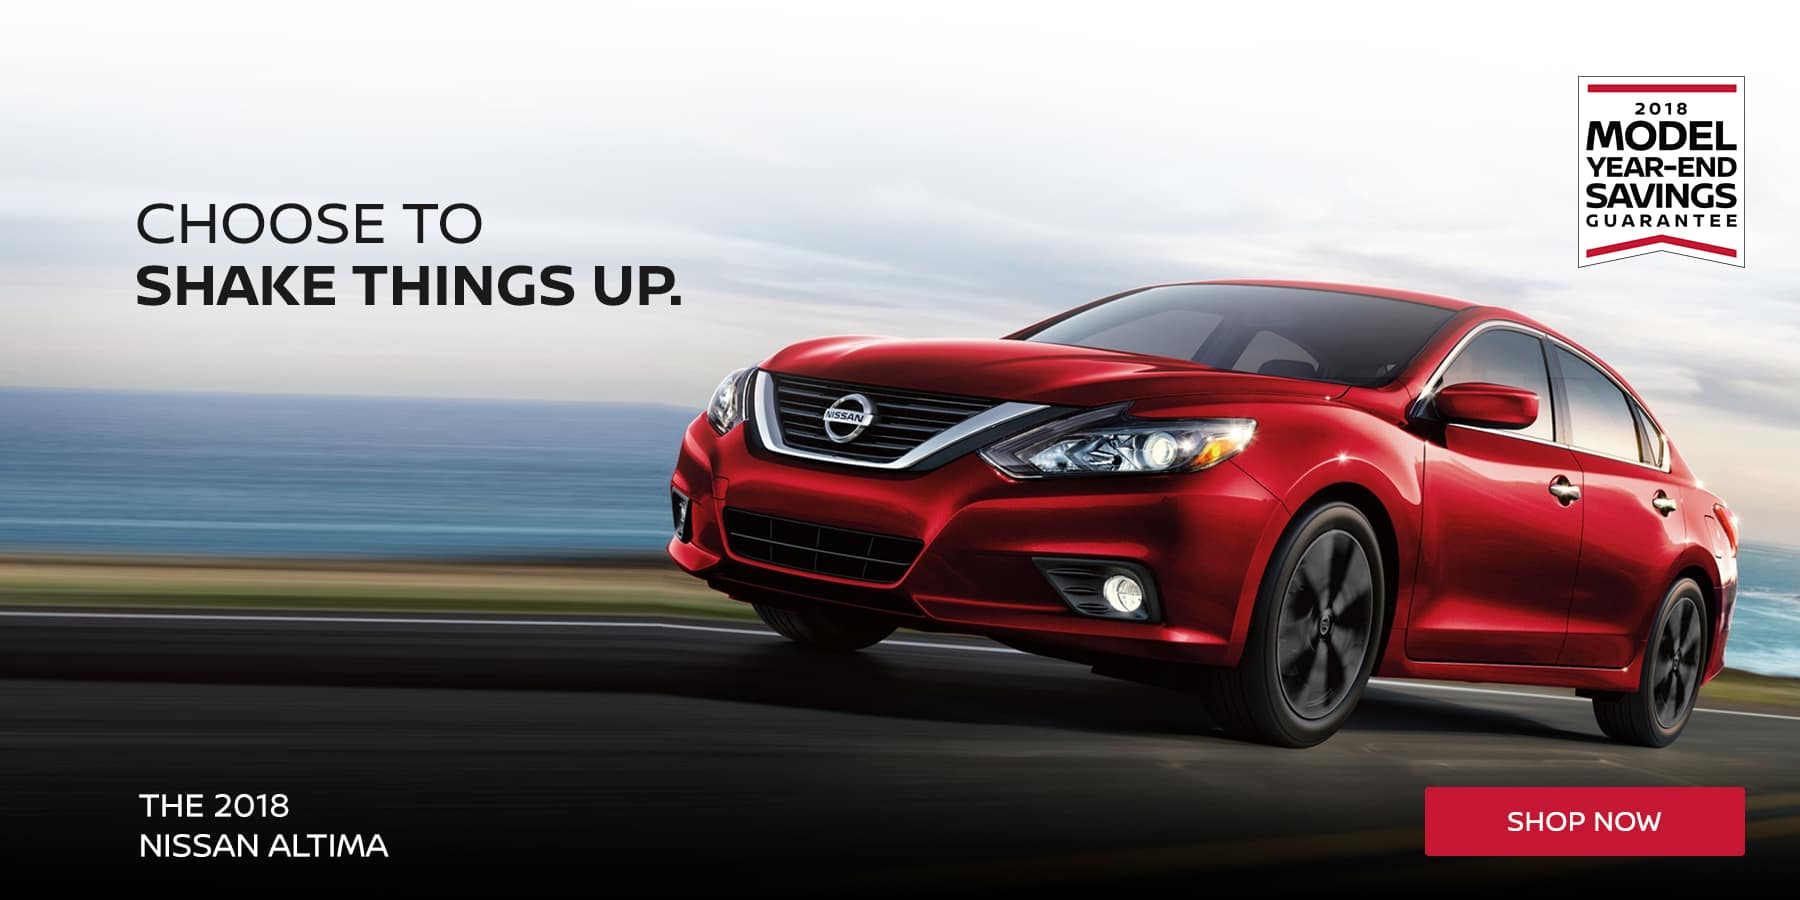 Tamaroff Nissan in Southfield, MI | New & Used Cars